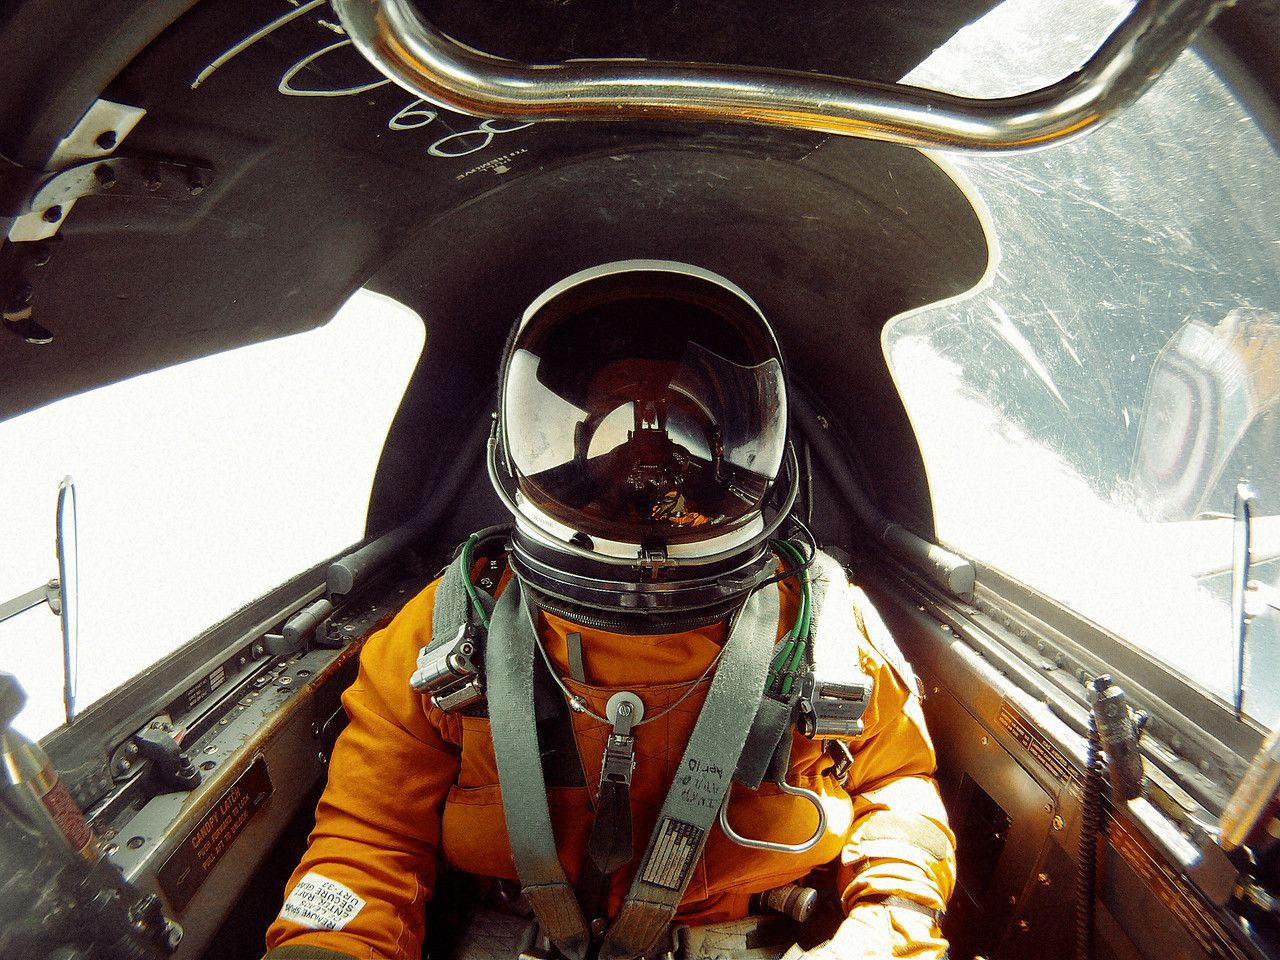 As I slipped open the sunshade of my spacesuit, I could see that the sky above was black. The curved white and blue Earth fell away below the horizon. Sailing like Icarus past 70,000 feet, I was now the 11th highest human on Earth. Soaring in a U-2 at the edge of space, this moment was one of the highlights of my life.